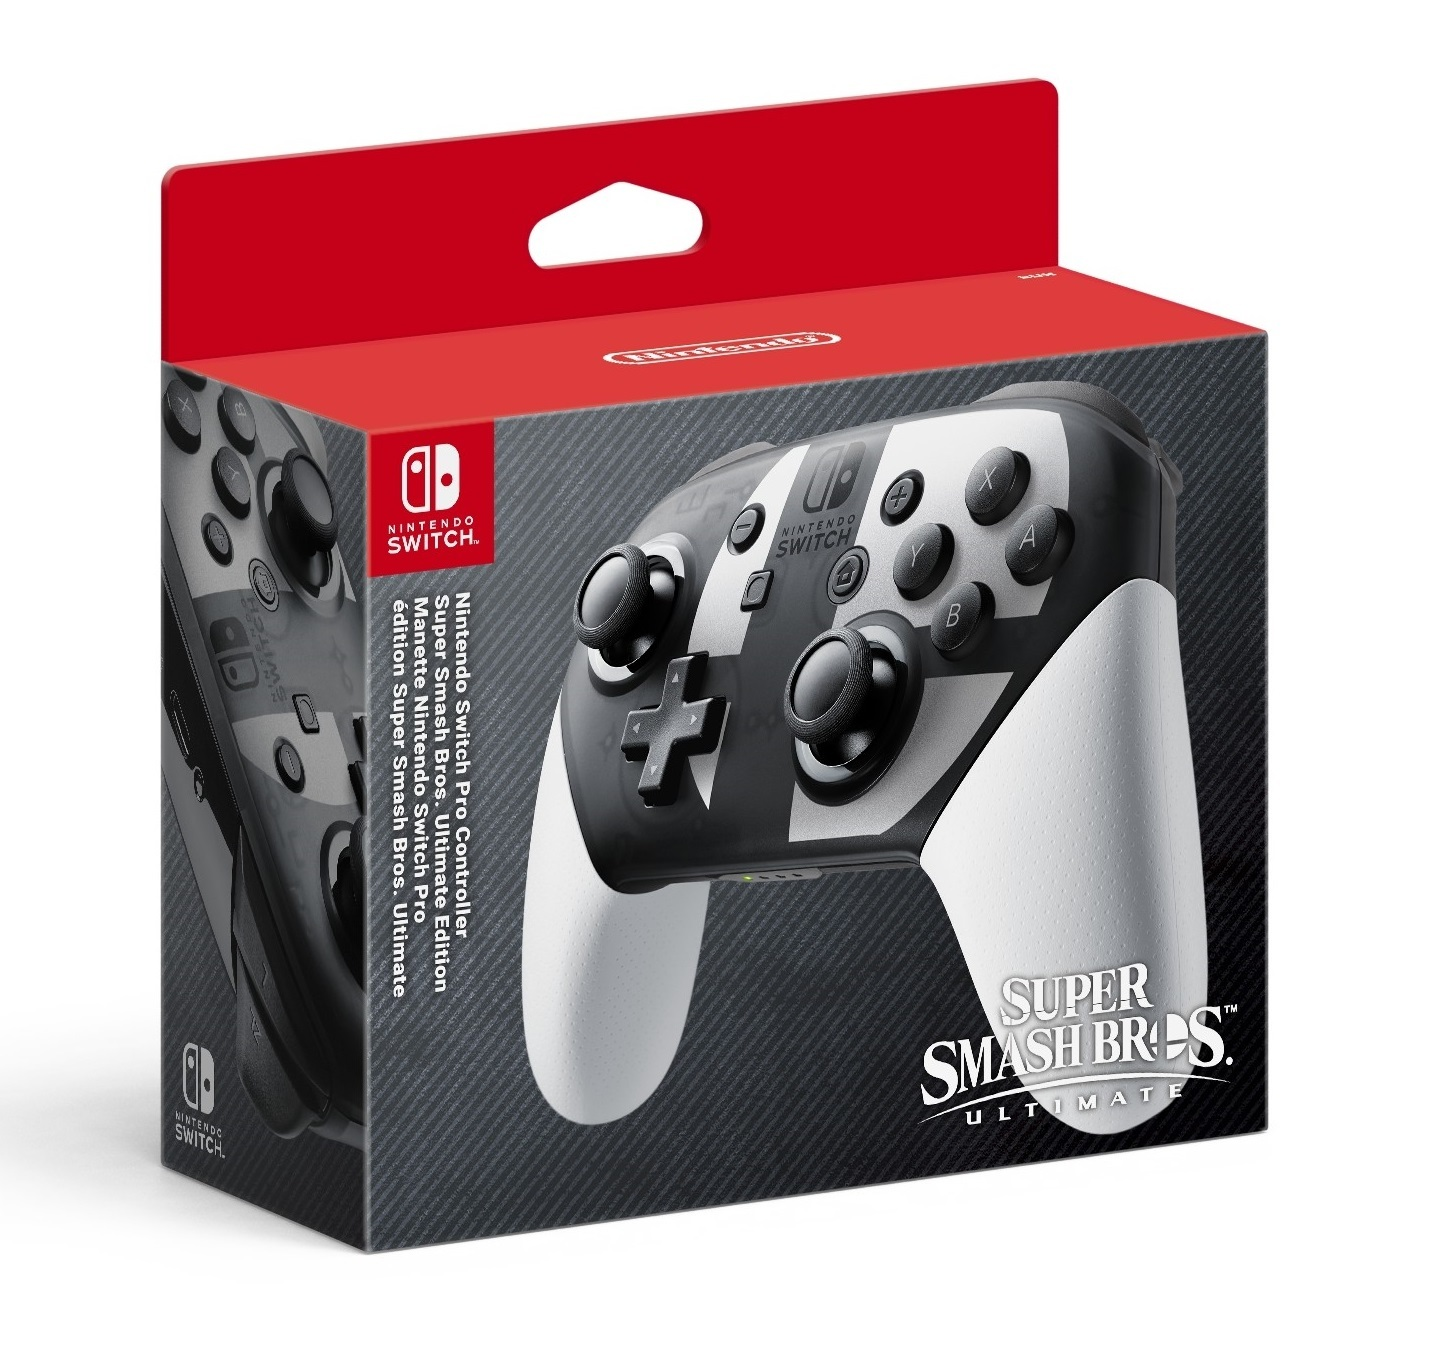 Nintendo Switch Pro Controller - Super Smash Bros Ultimate Edition for Switch image